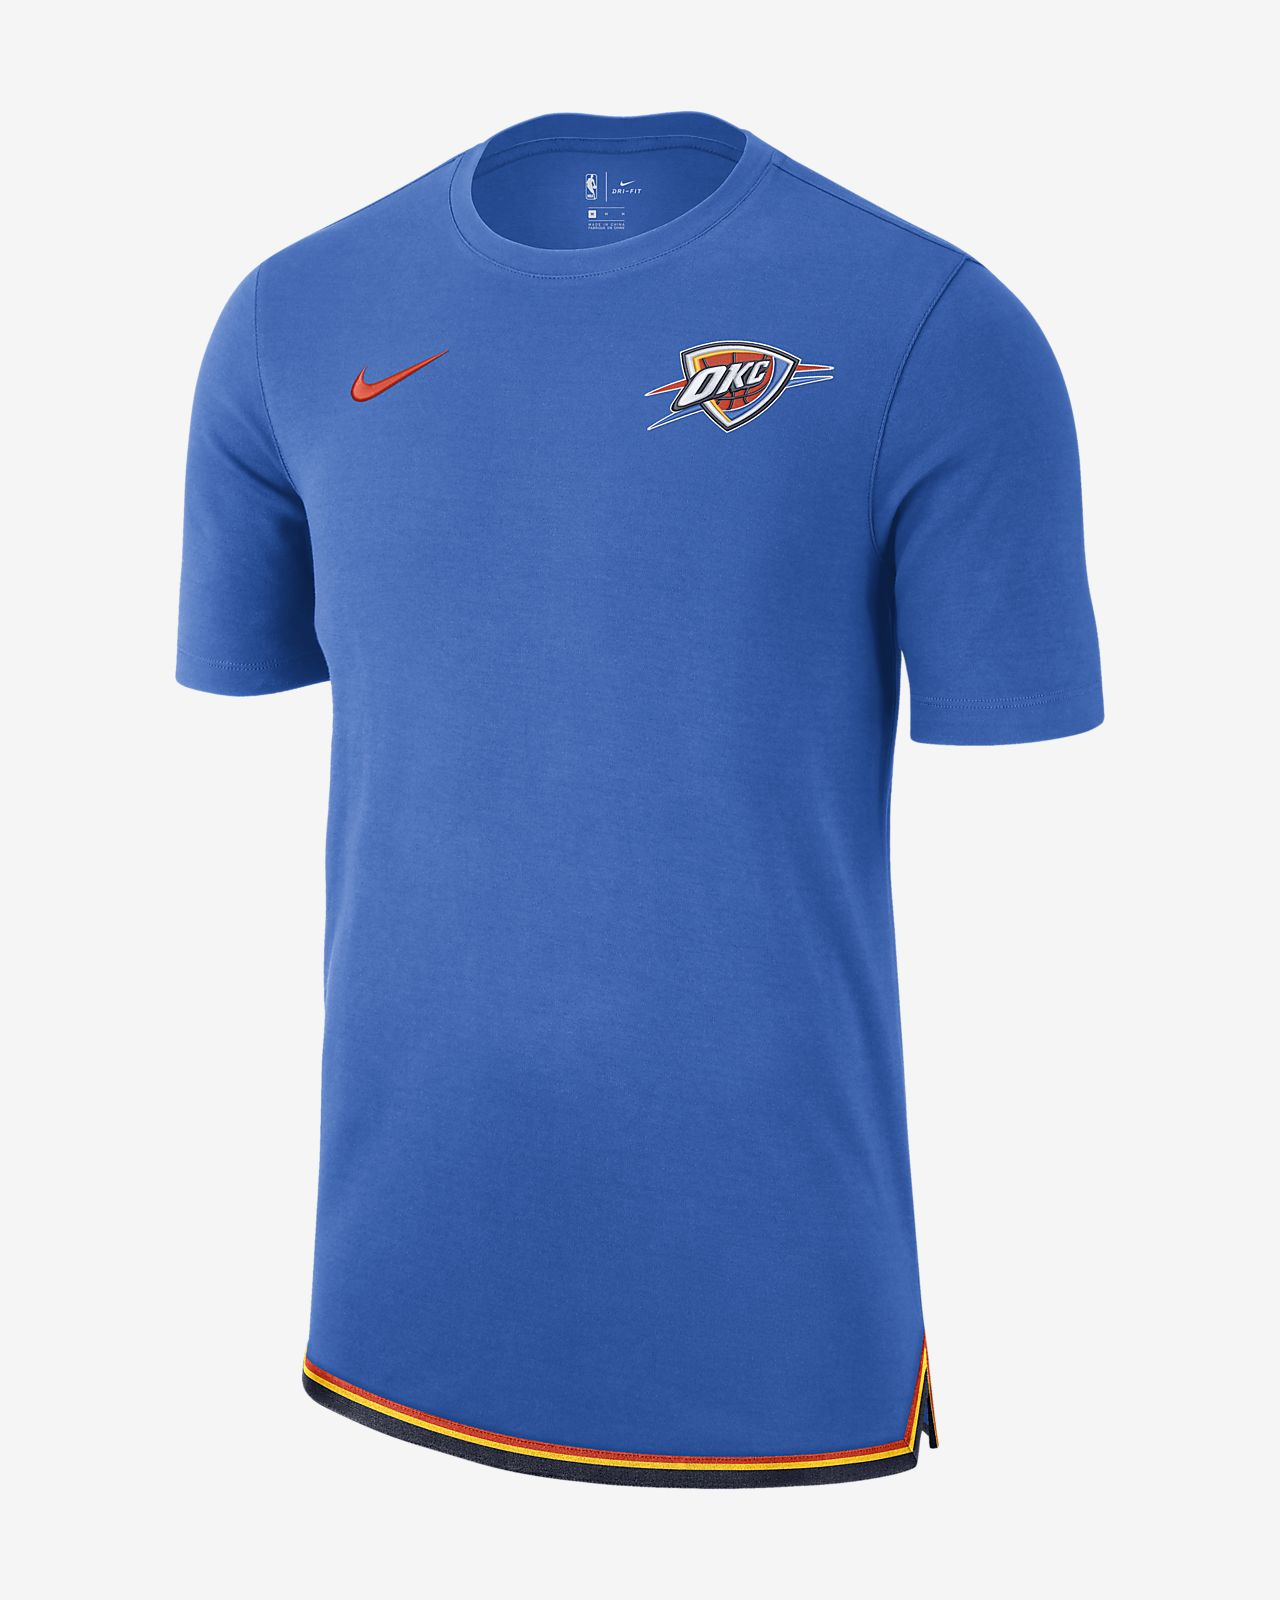 Oklahoma City Thunder Nike Men's NBA Top